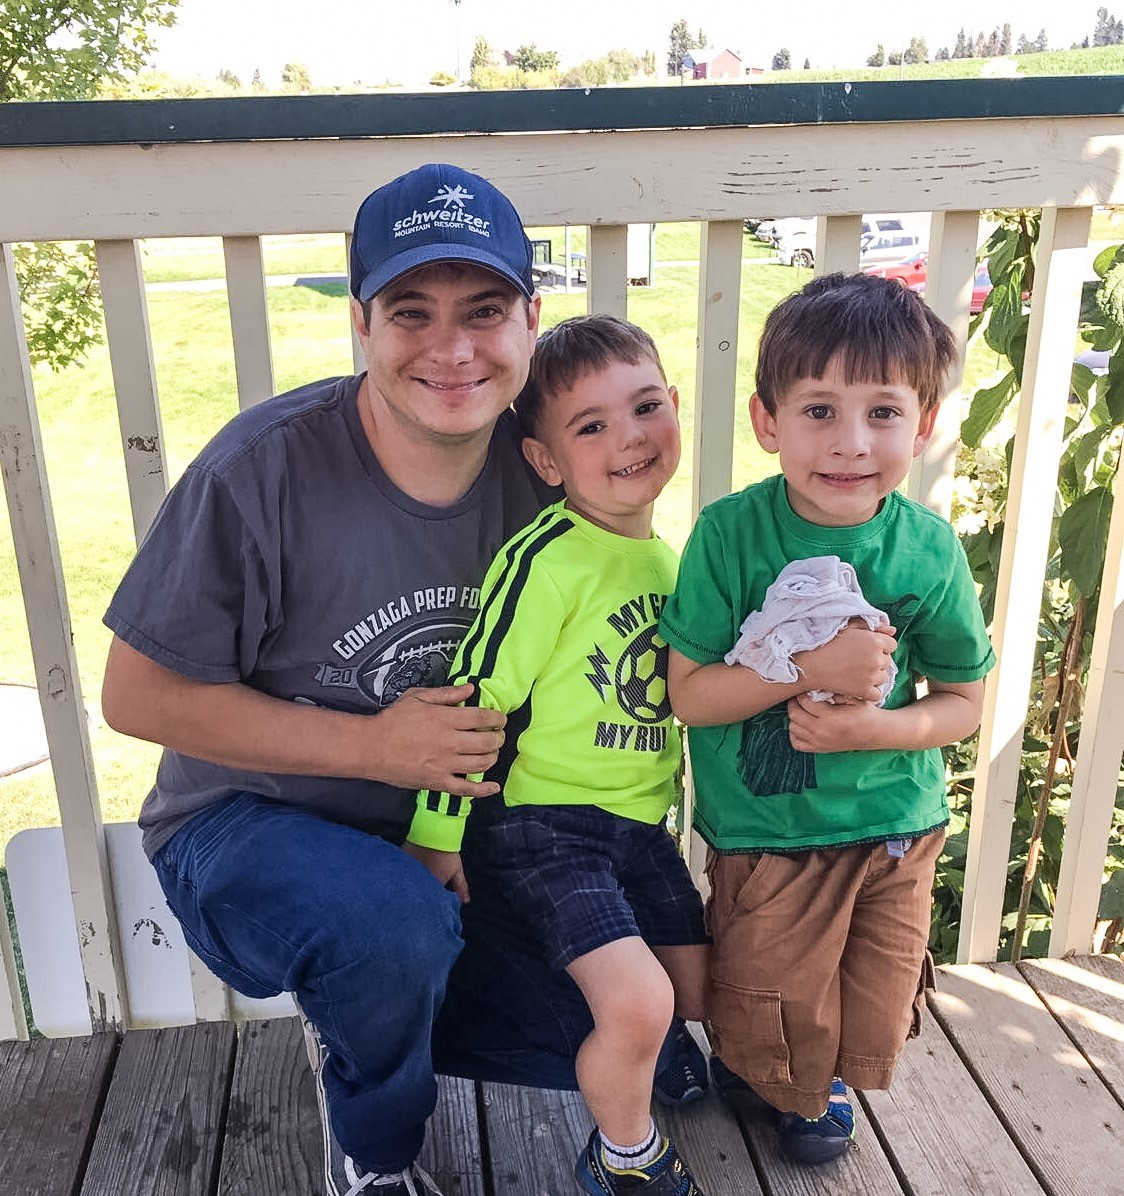 Jeff with nephews at Green Bluff